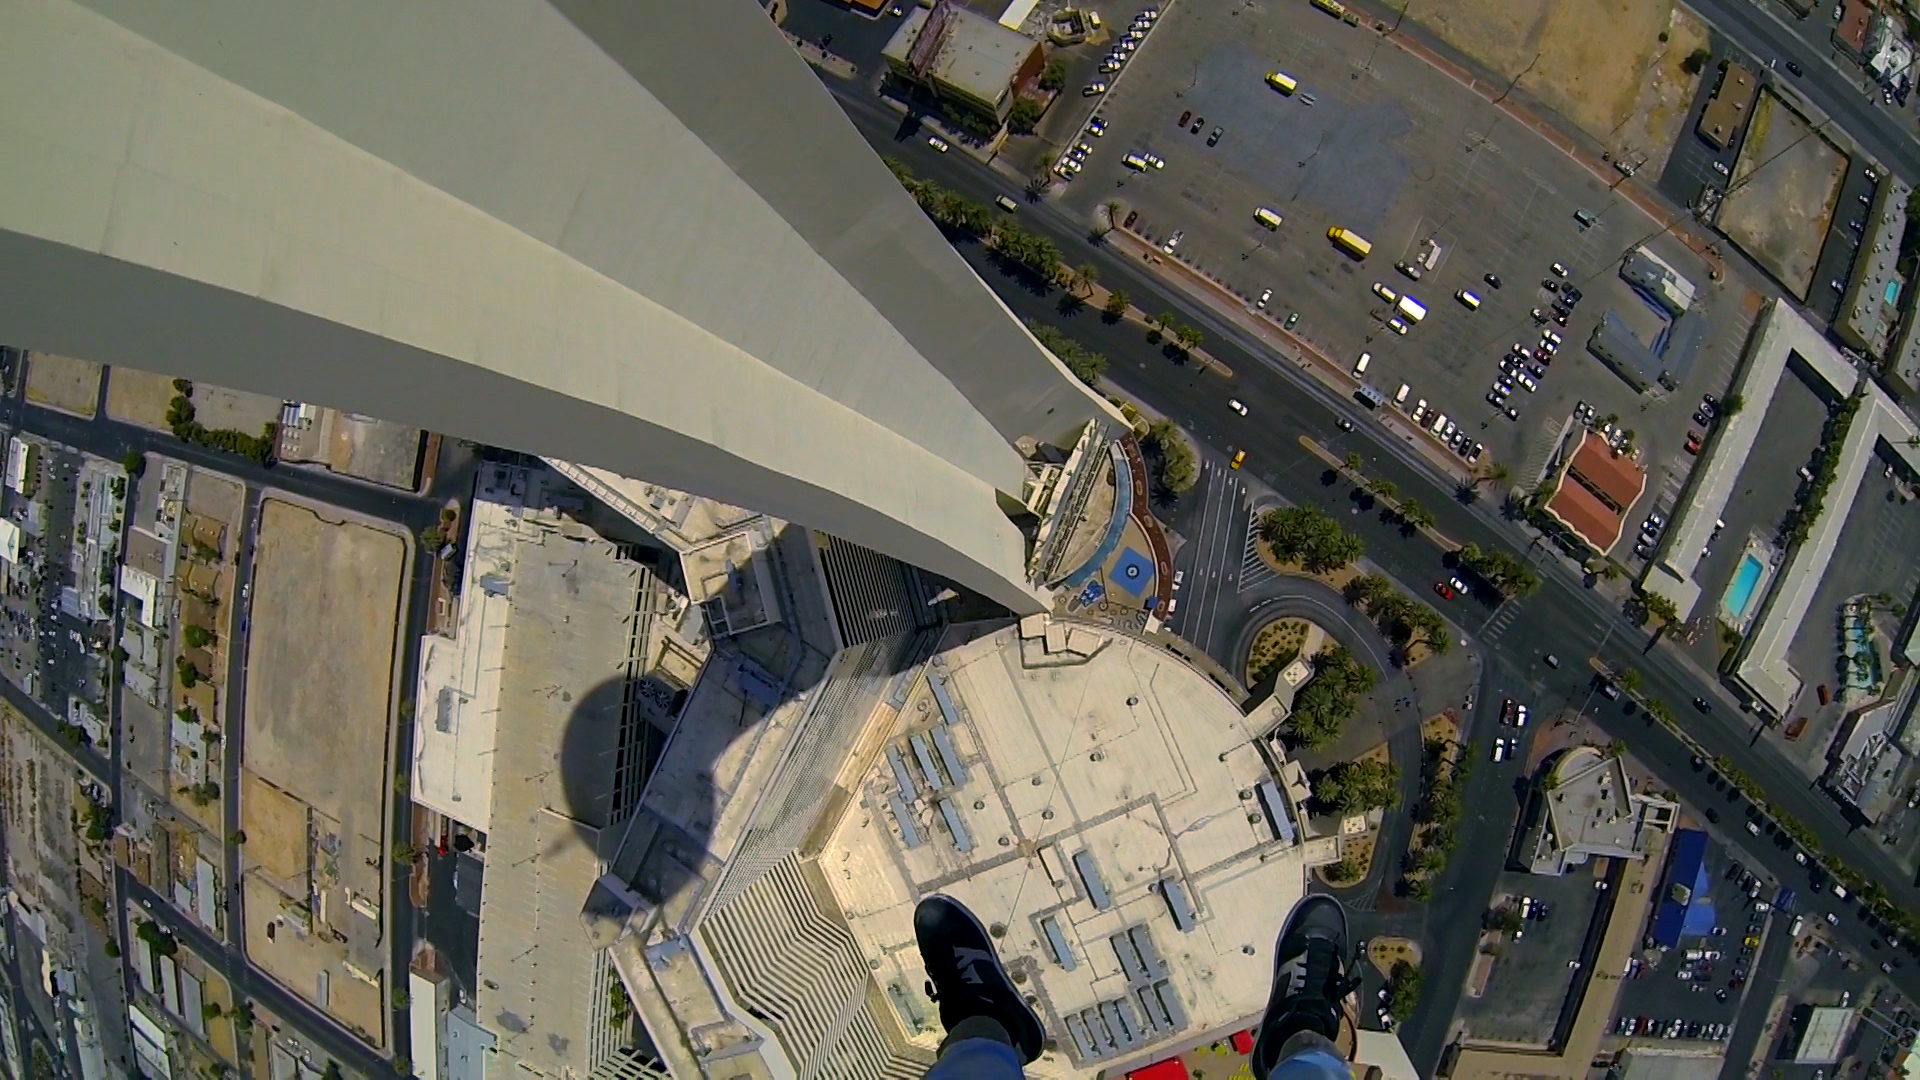 Fear Of Driving >> Top 10 Thrill Rides in Vegas (with Videos) | Las Vegas Blogs